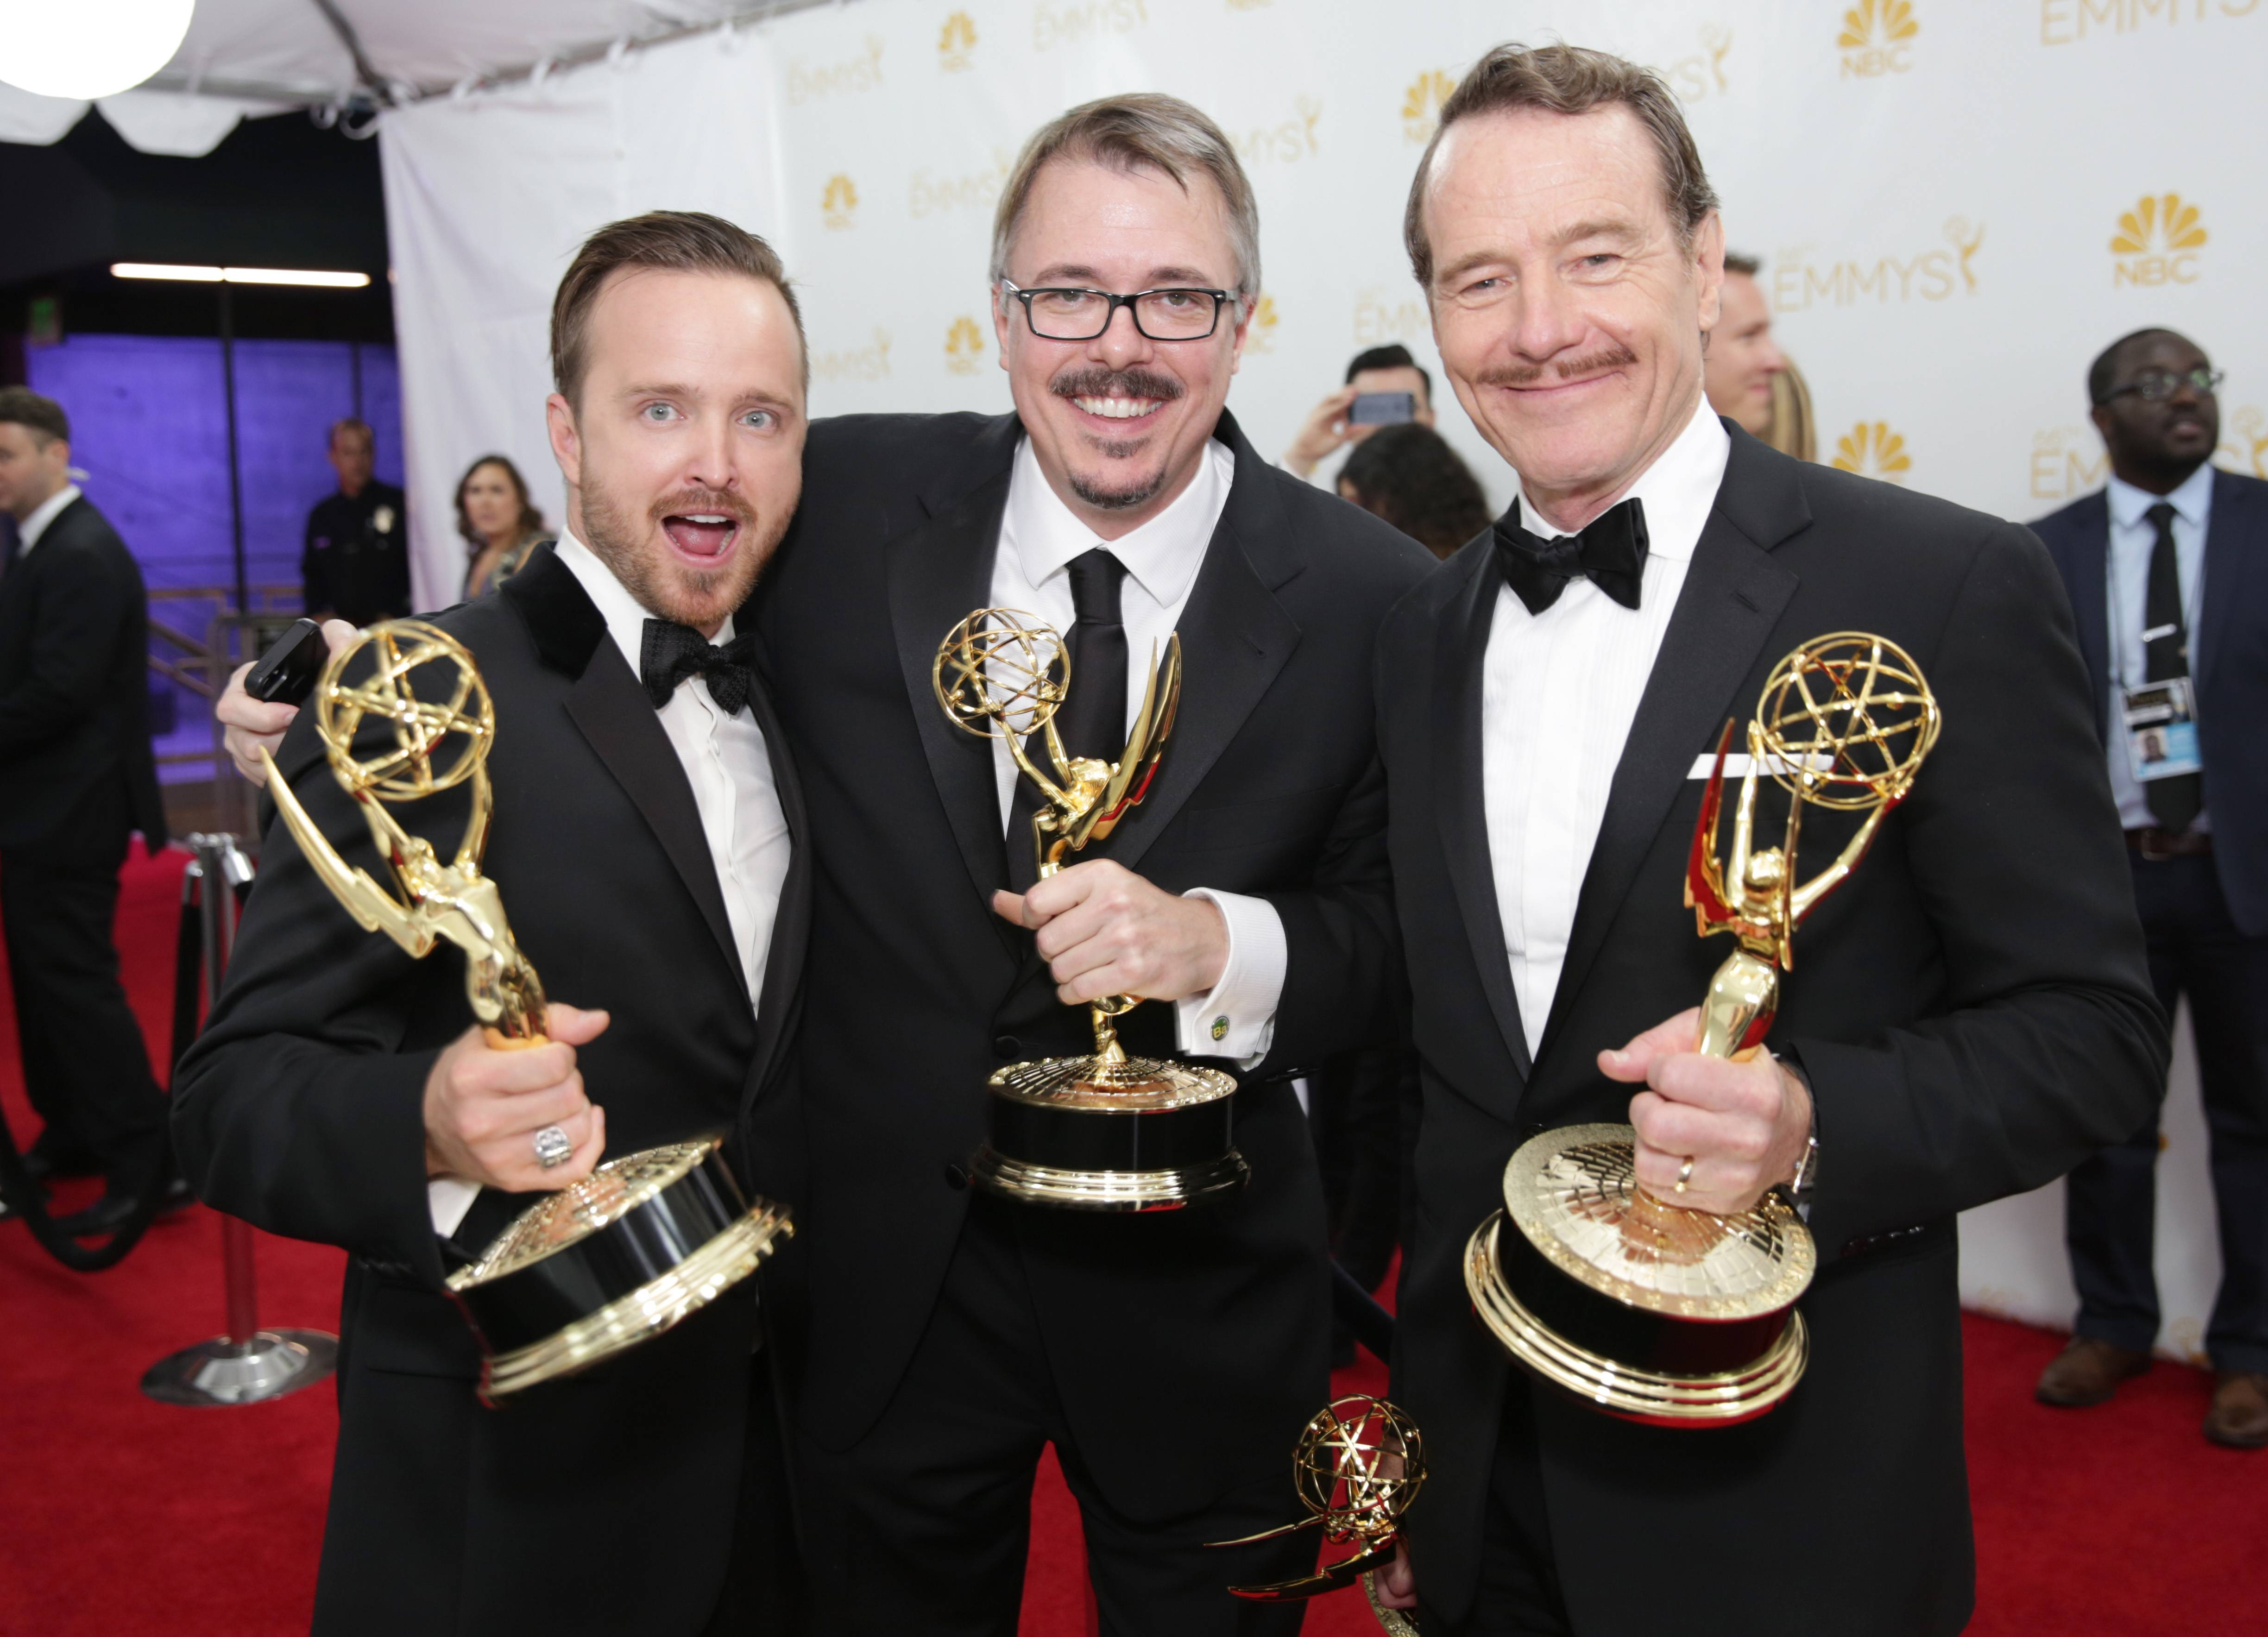 Aaron Paul, left, Vince Gilligan and Bryan Cranston pose at the 66th Primetime Emmy Awards at the Nokia Theatre.